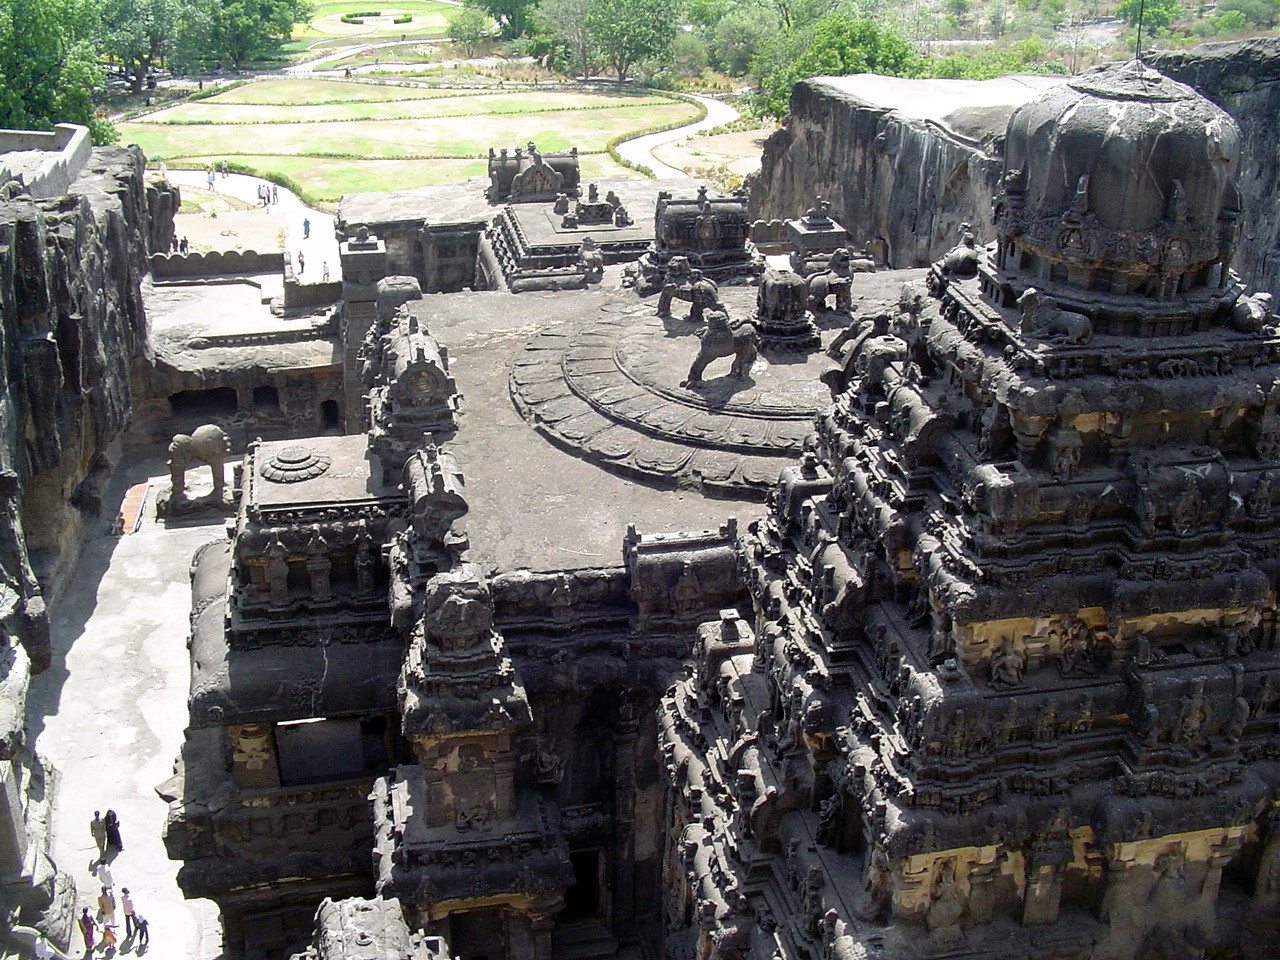 https://upload.wikimedia.org/wikipedia/commons/8/87/Kailasha_temple_at_ellora.JPG